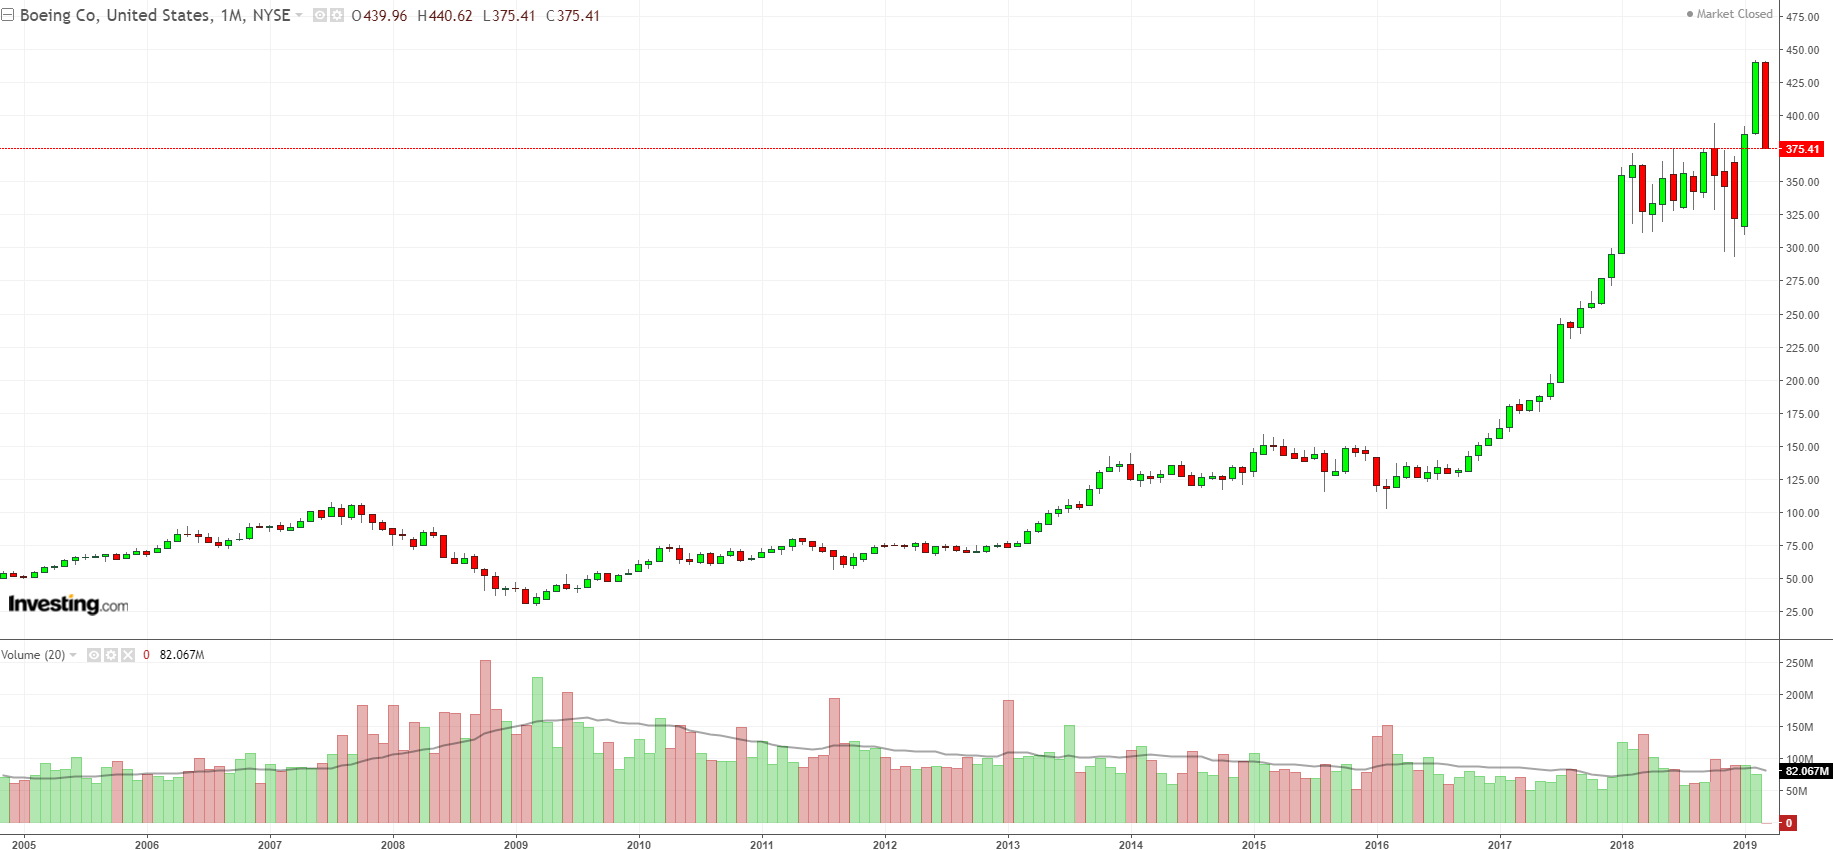 BA Monthly Chart 2005-2019